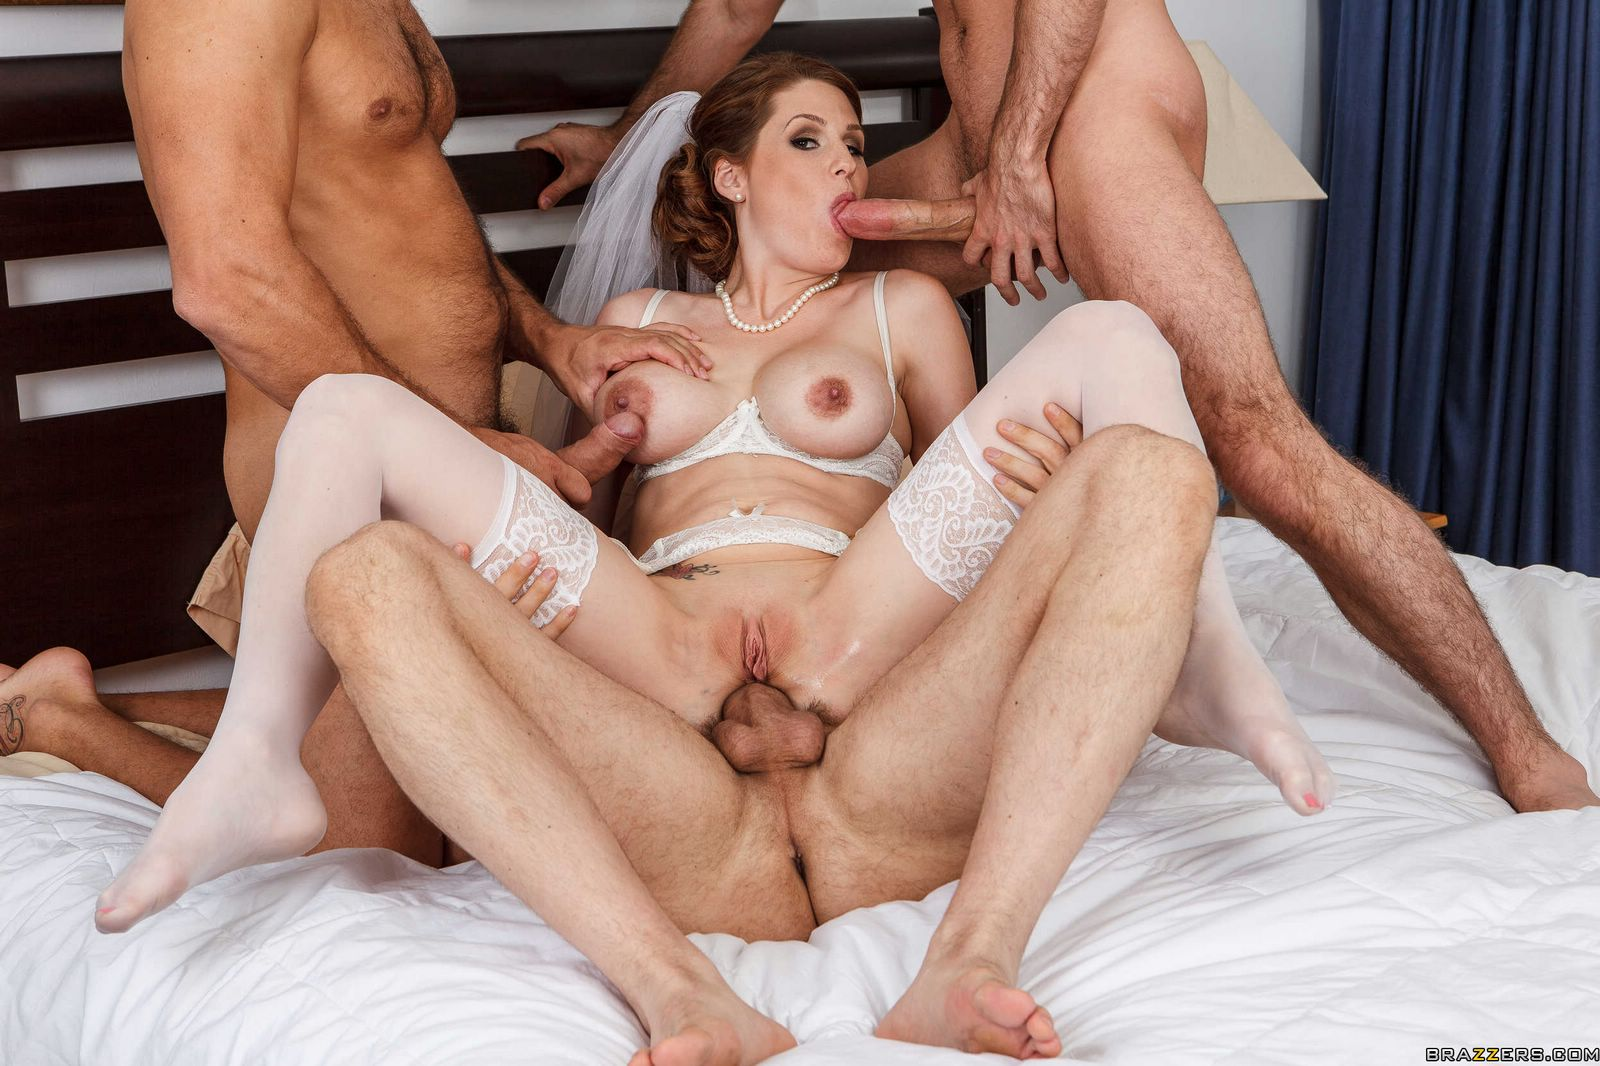 Fucked by three black friends and still needs masturbation